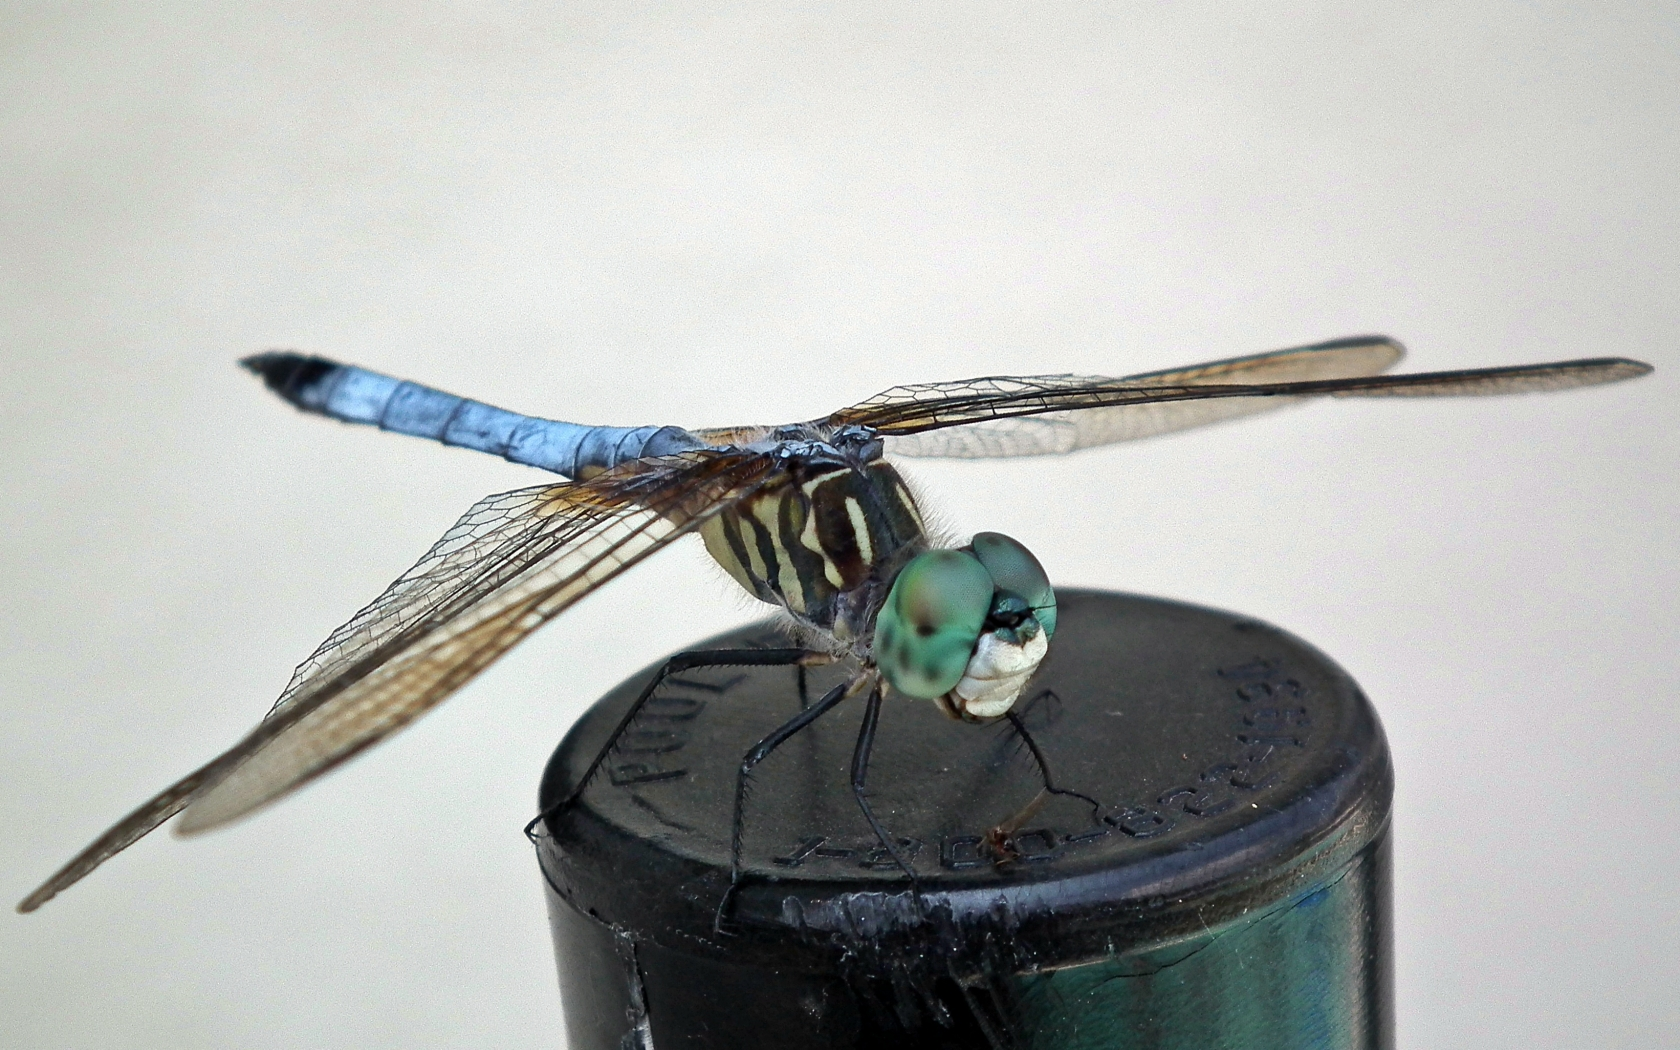 Dragonfly, close-up photo